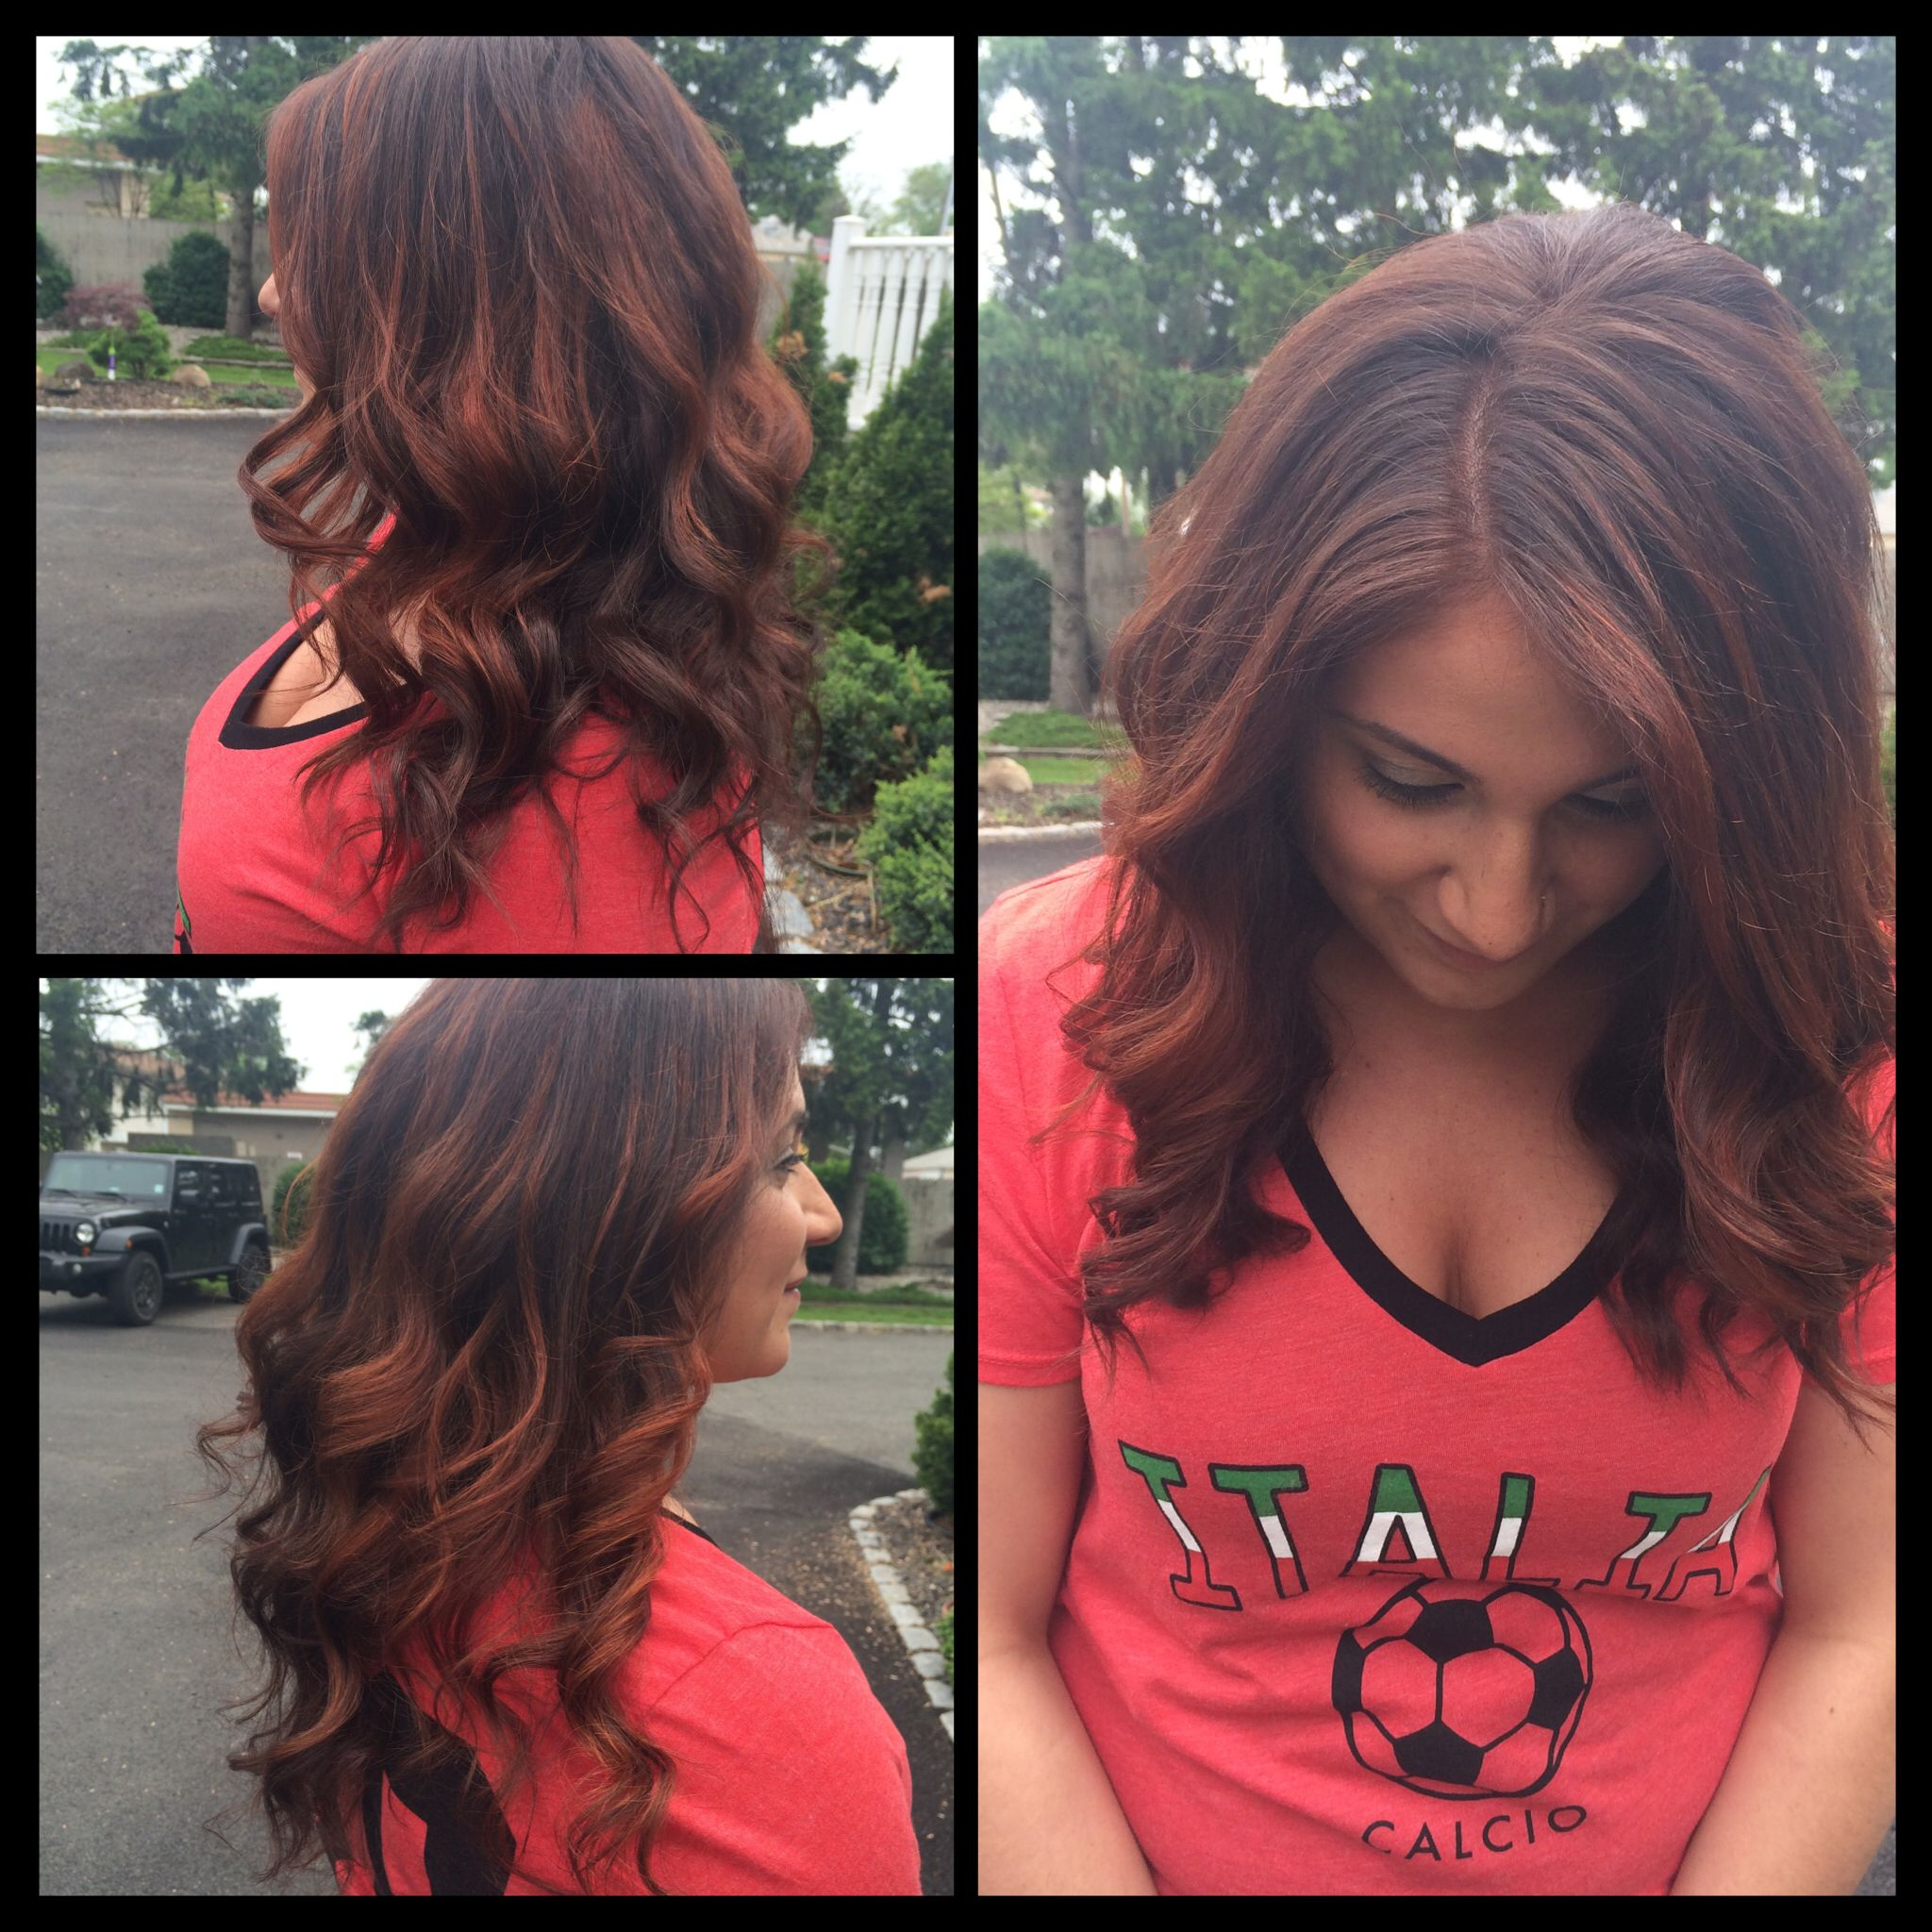 Veronica S Old But New Hair Done By Me Balayage Highlights With 40 Vol Till Hair Came Up To A